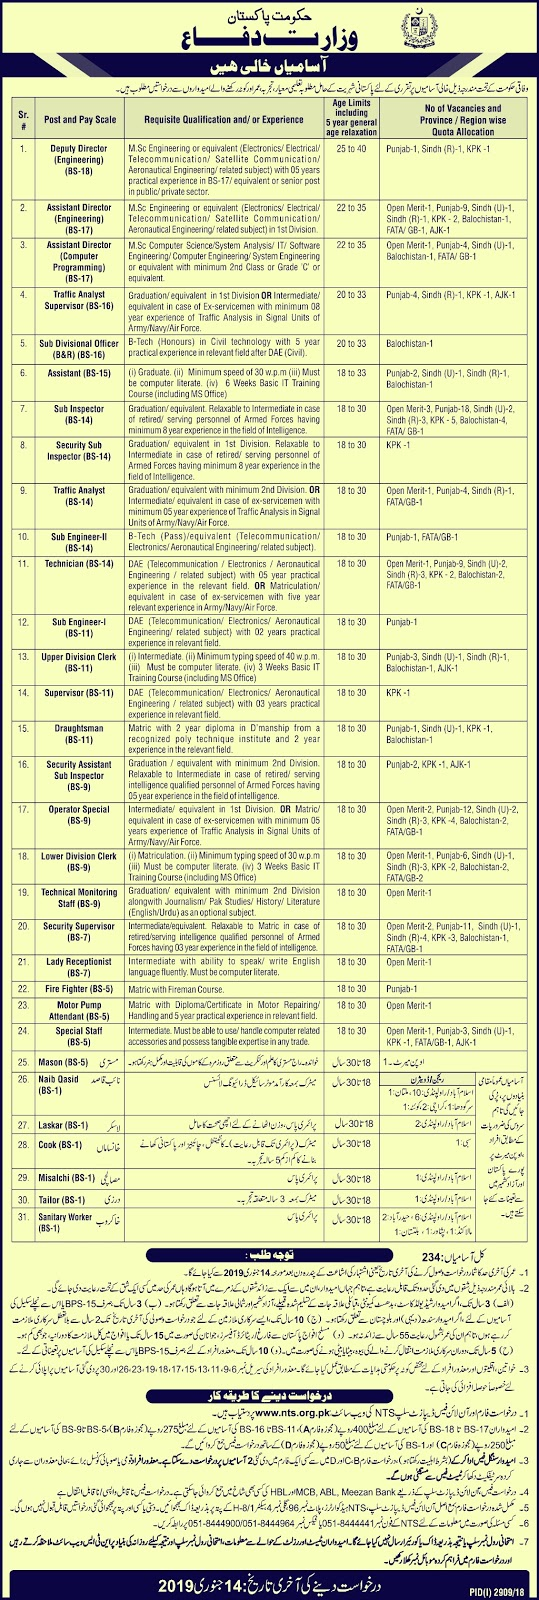 Ministry of Defence New Jobs January 2019 | Download Application Form    ministry of defence pakistan jobs 2019  ministry of defence jobs 2019 advertisement  defence minister of pakistan 2019  ministry of defence jobs assistant director  ministry of defence production  ministry of defence jobs 2019 application form  ministry of defence production jobs 2019  jobs in ministry of interior